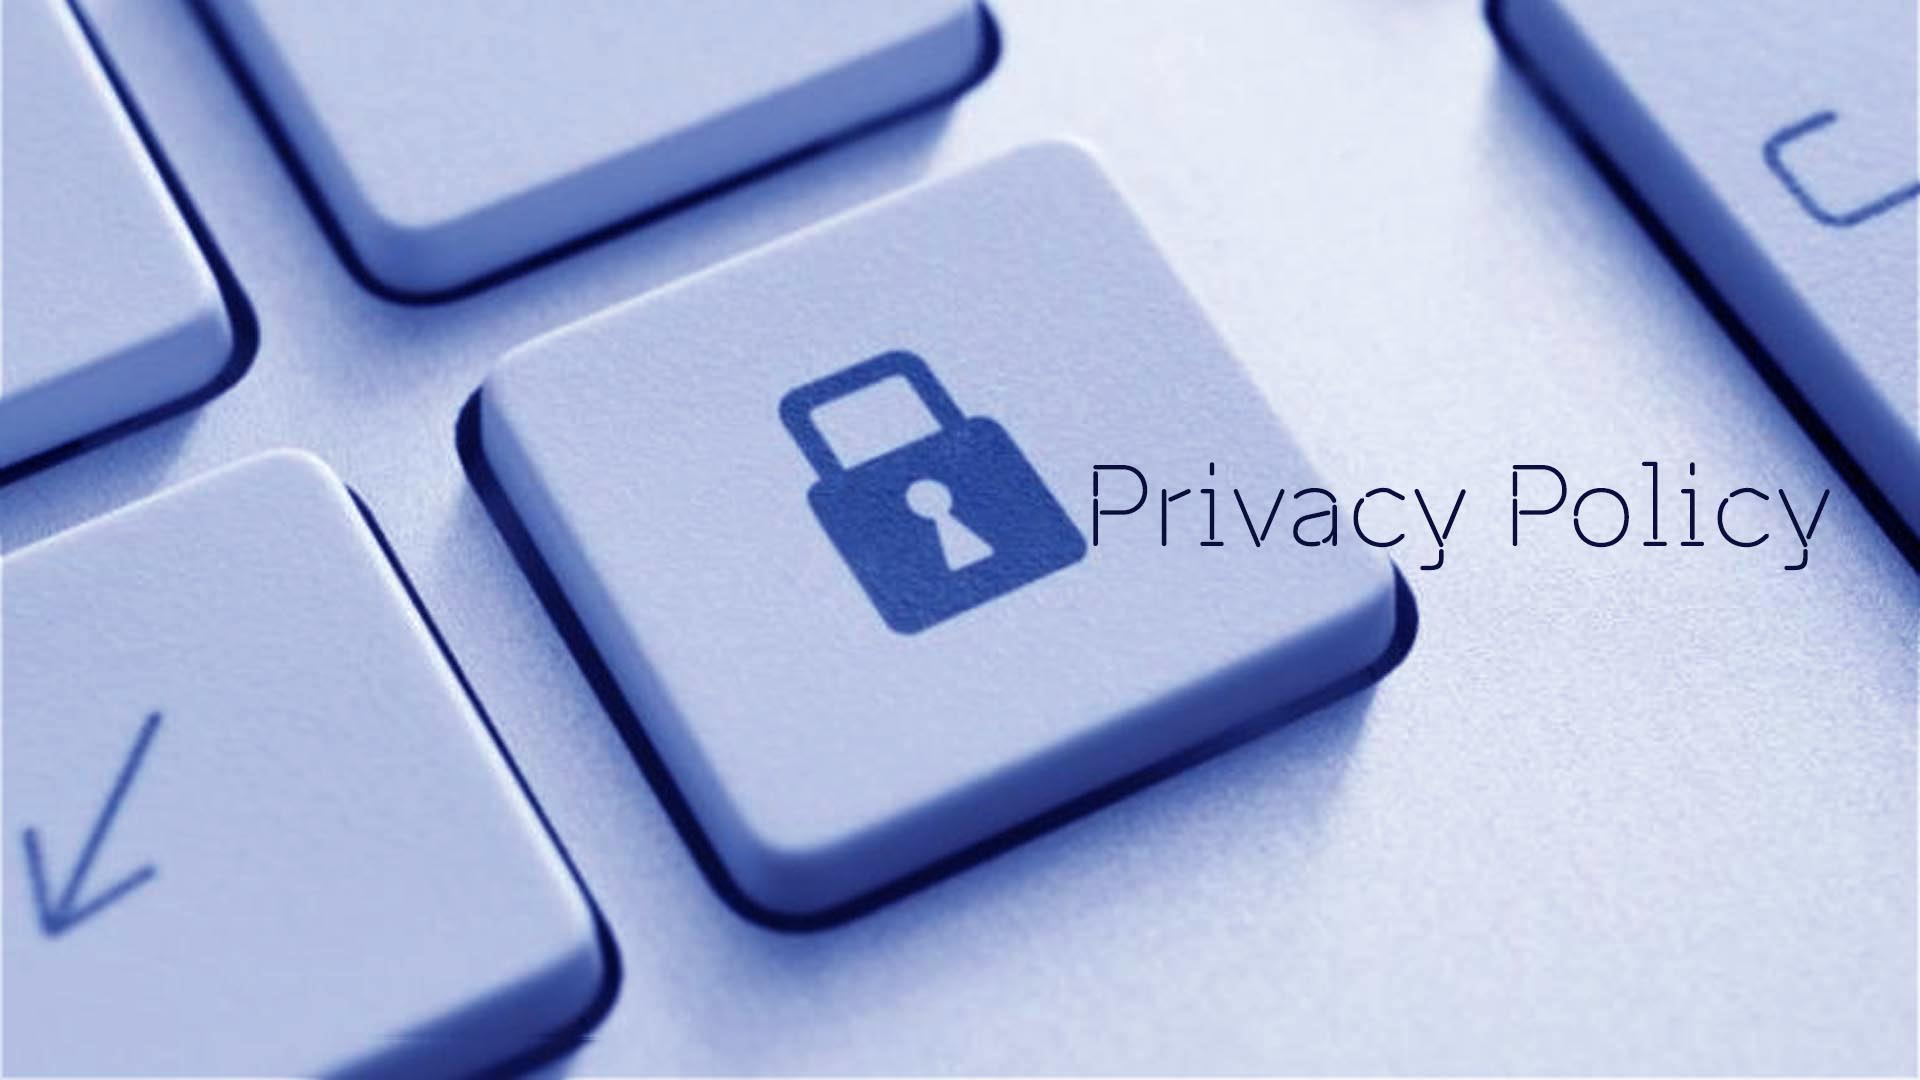 Privacy Policy | The Mobile Association